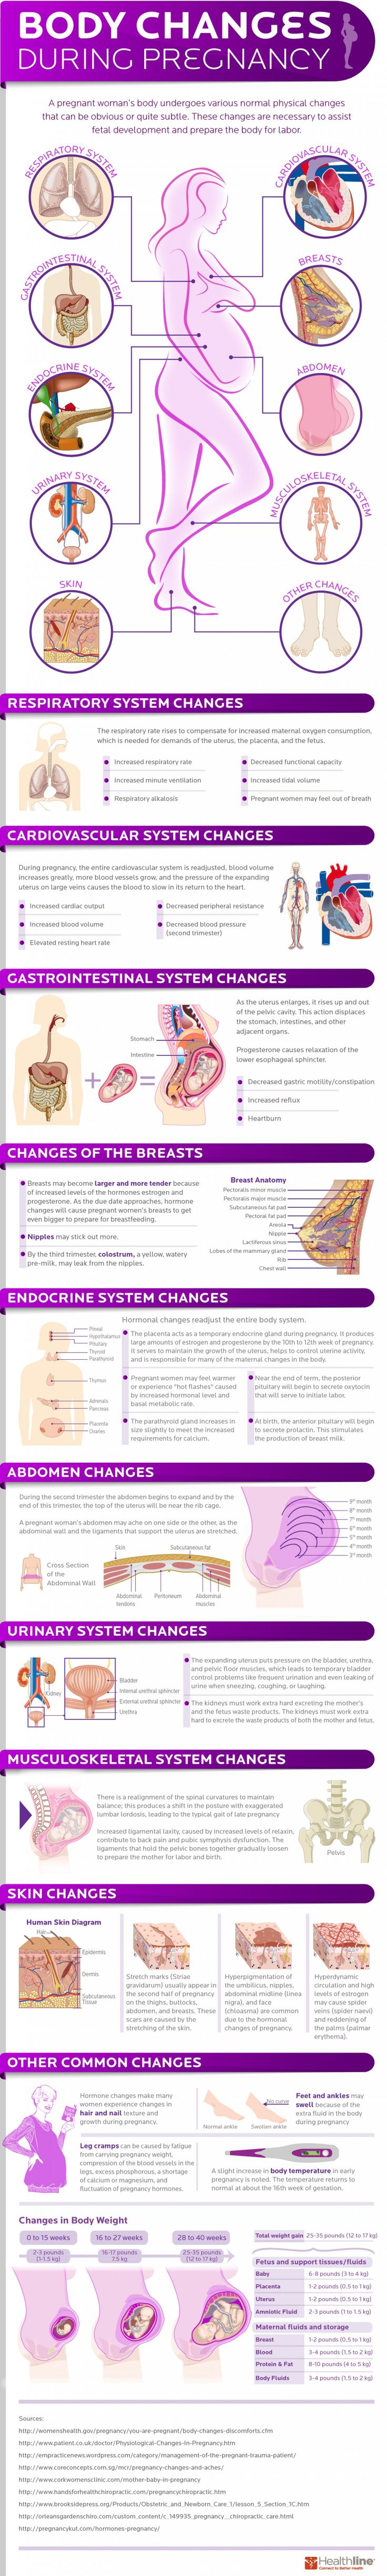 Pregnancy 101: The Changes in the Body Infographic